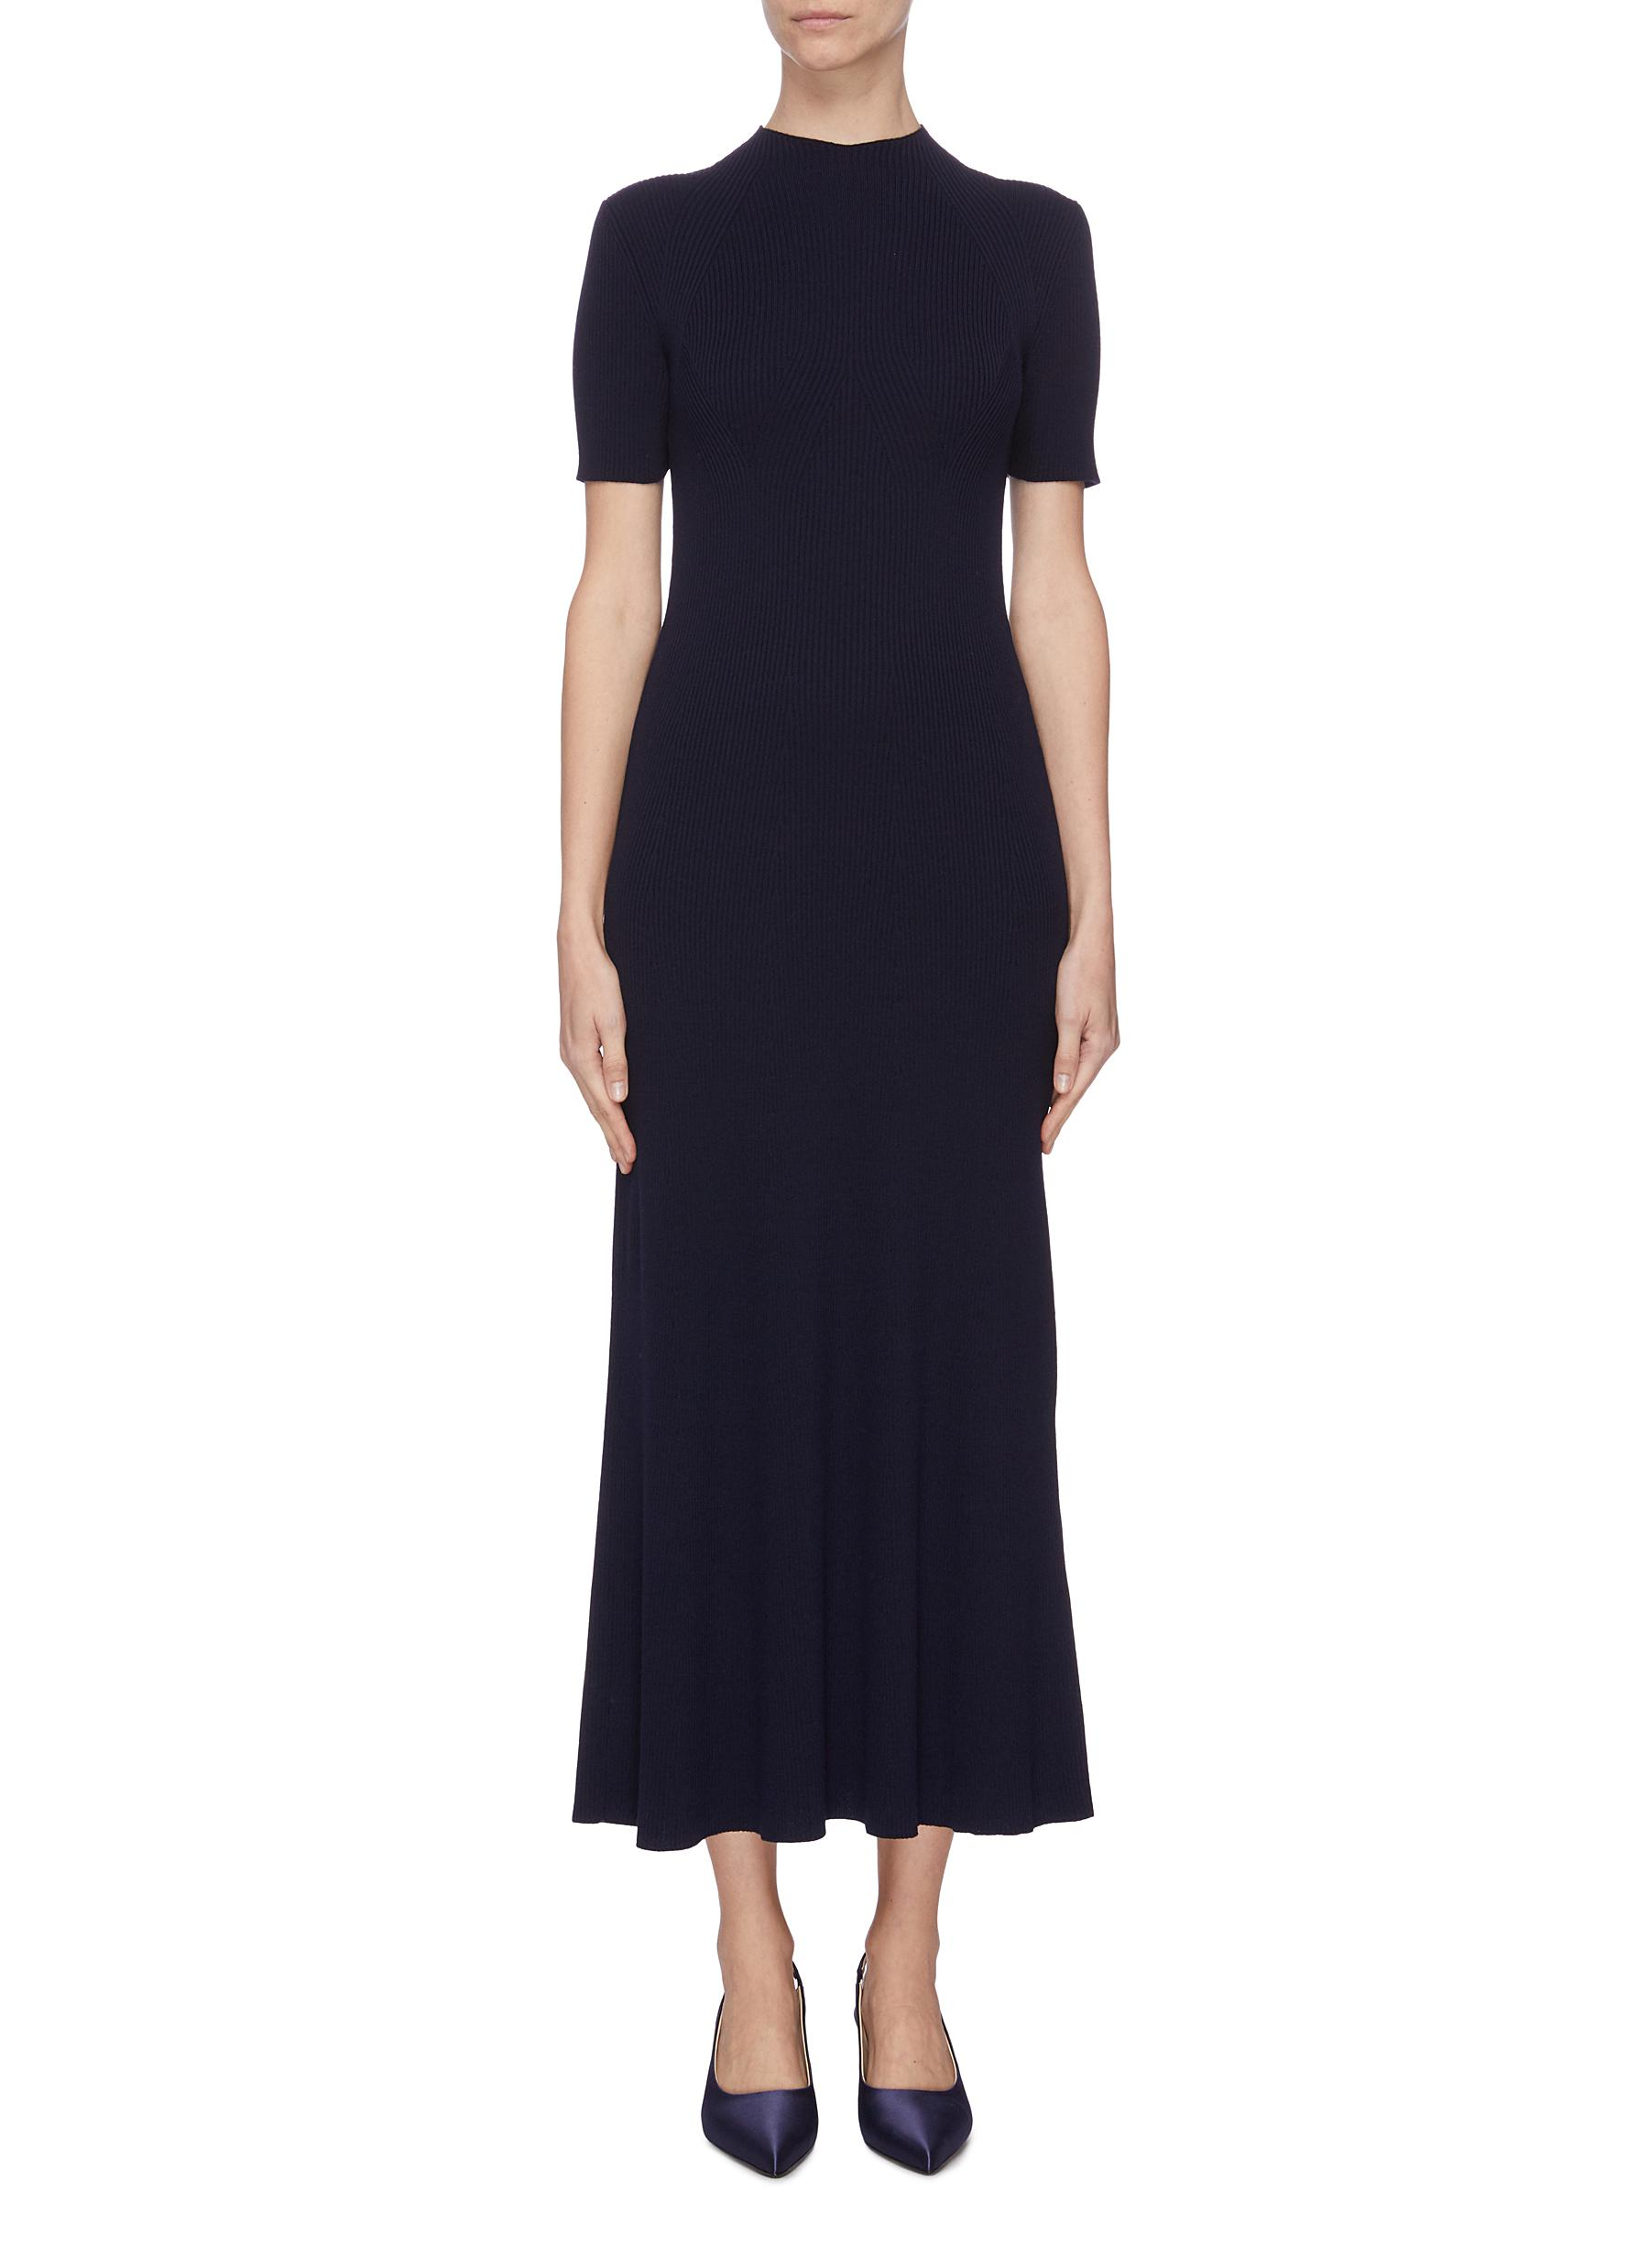 Buy Gabriela Hearst Dresses 'Clare' mock neck wool knit dress